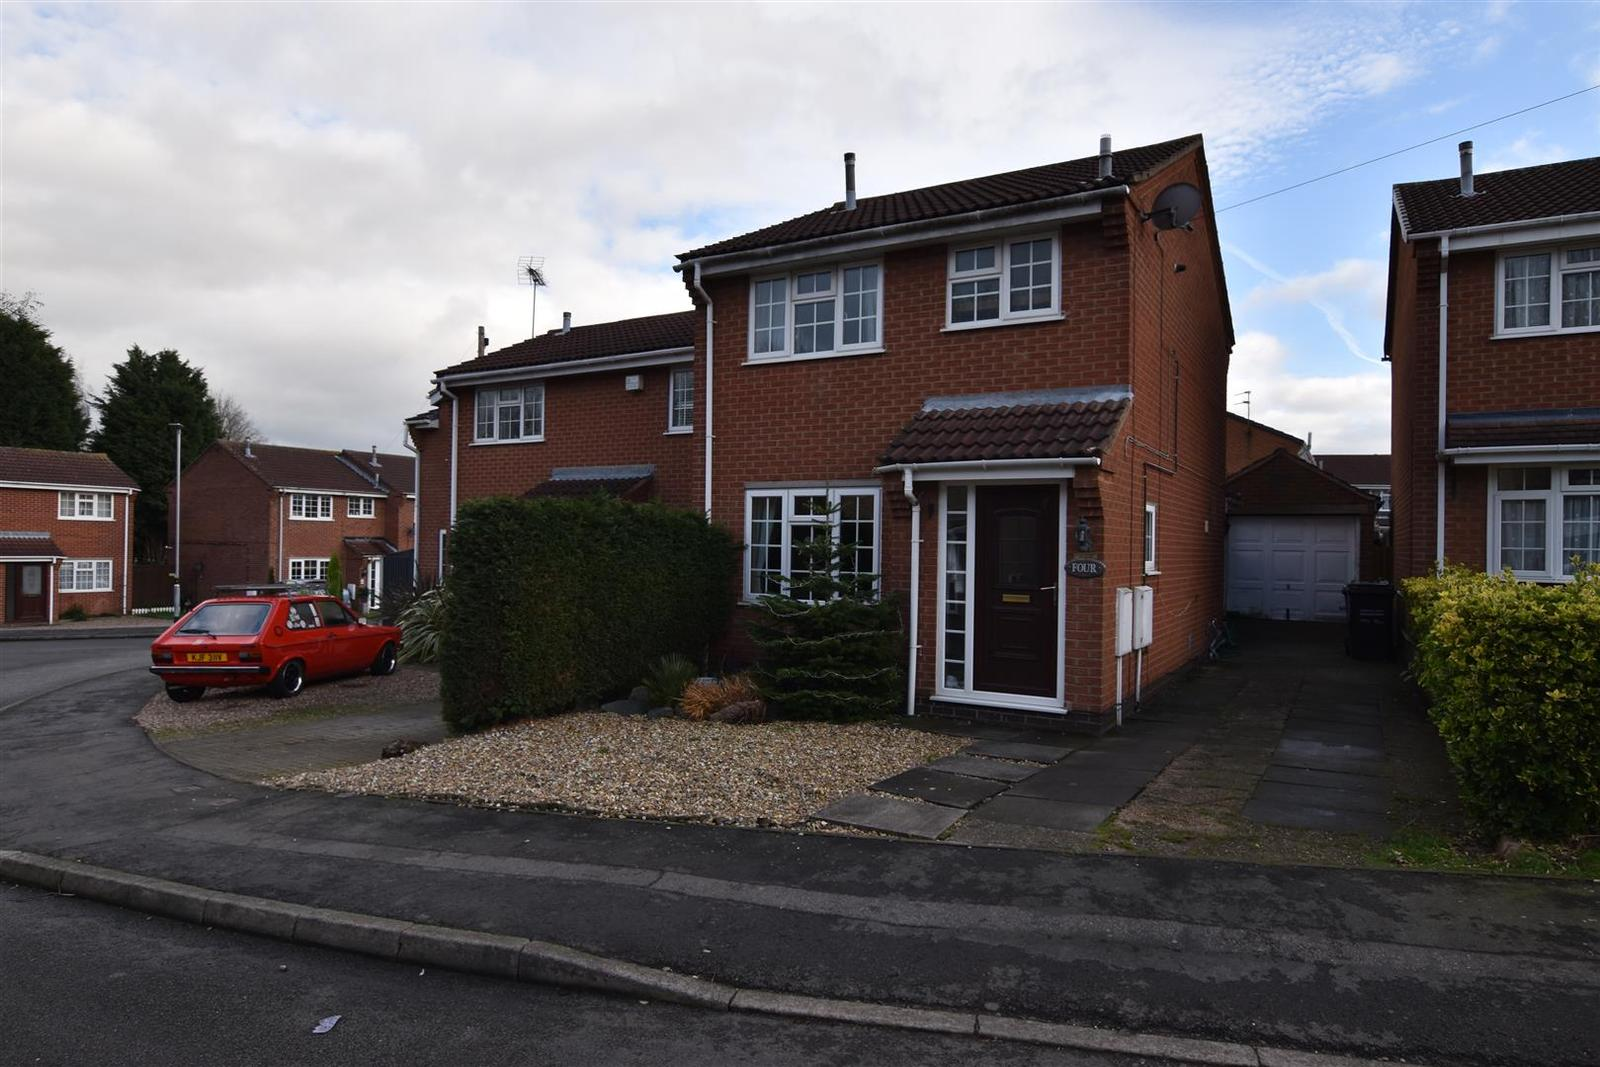 3 Bedrooms Detached House for sale in Irwin Avenue, Loughborough